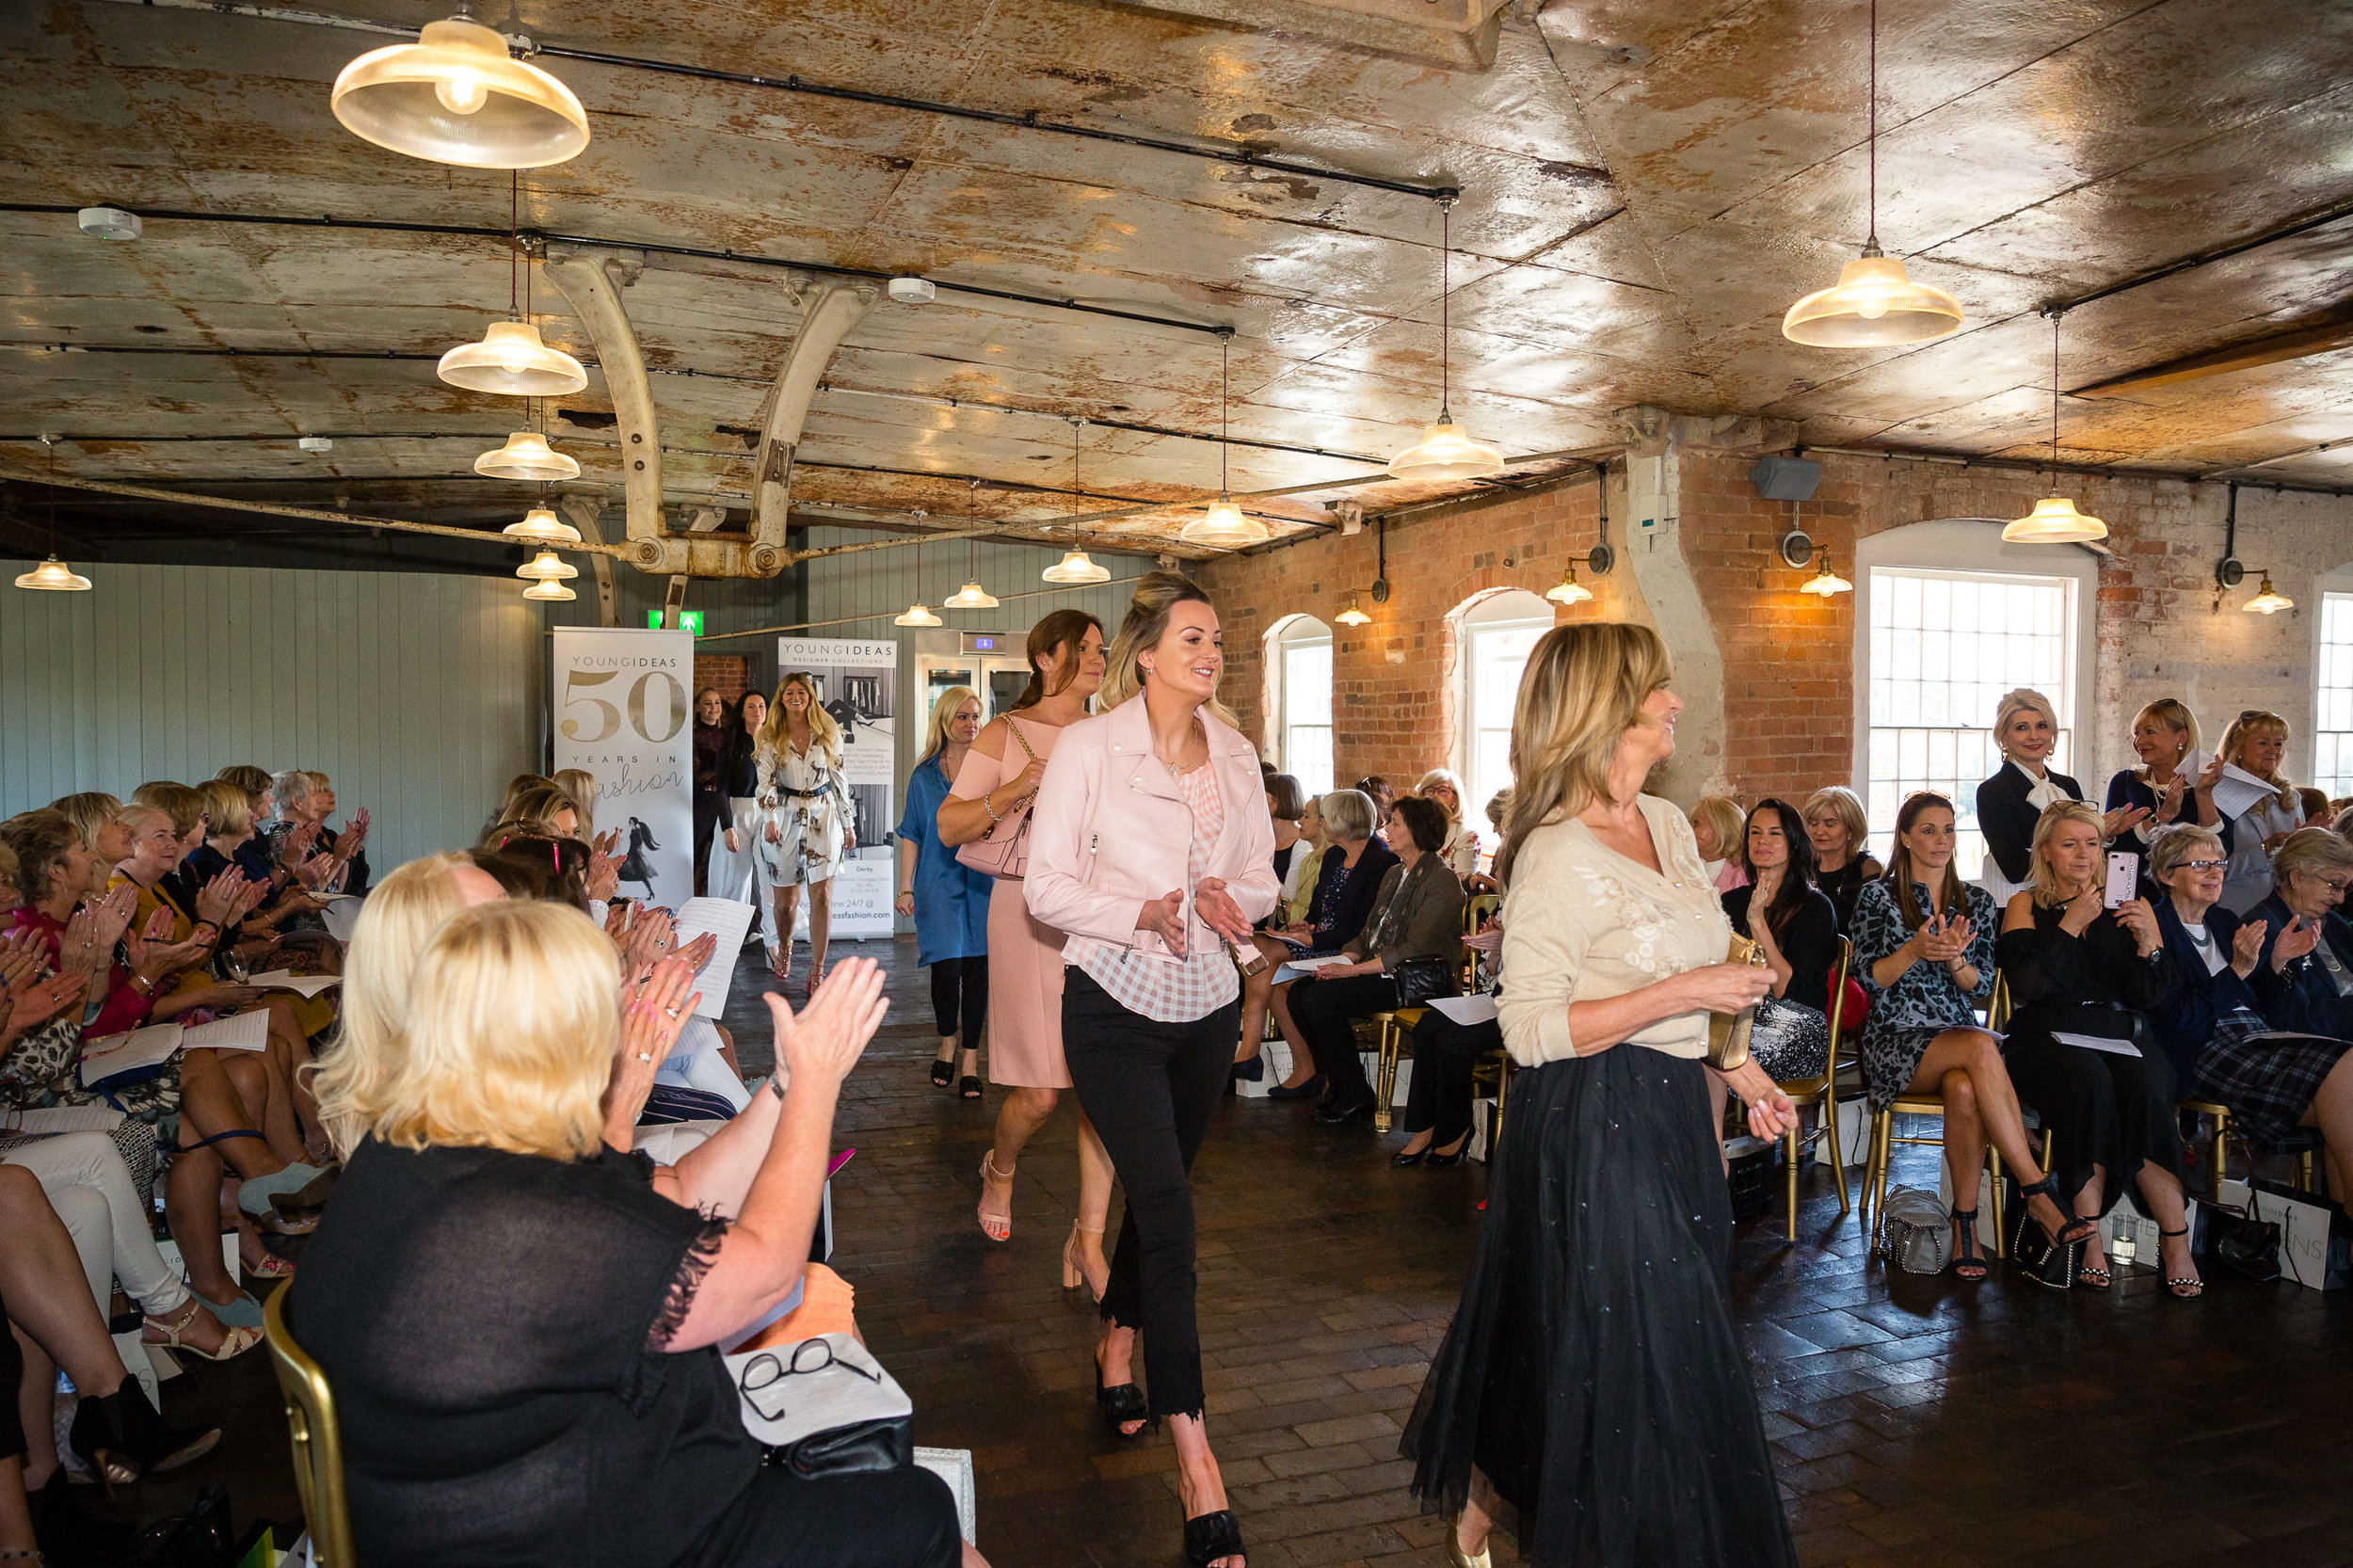 Designer-Fashion-Show-Clothing-Young-Ideas-West-Mill-Venue-Derby-Photography-Photographer-26.jpg